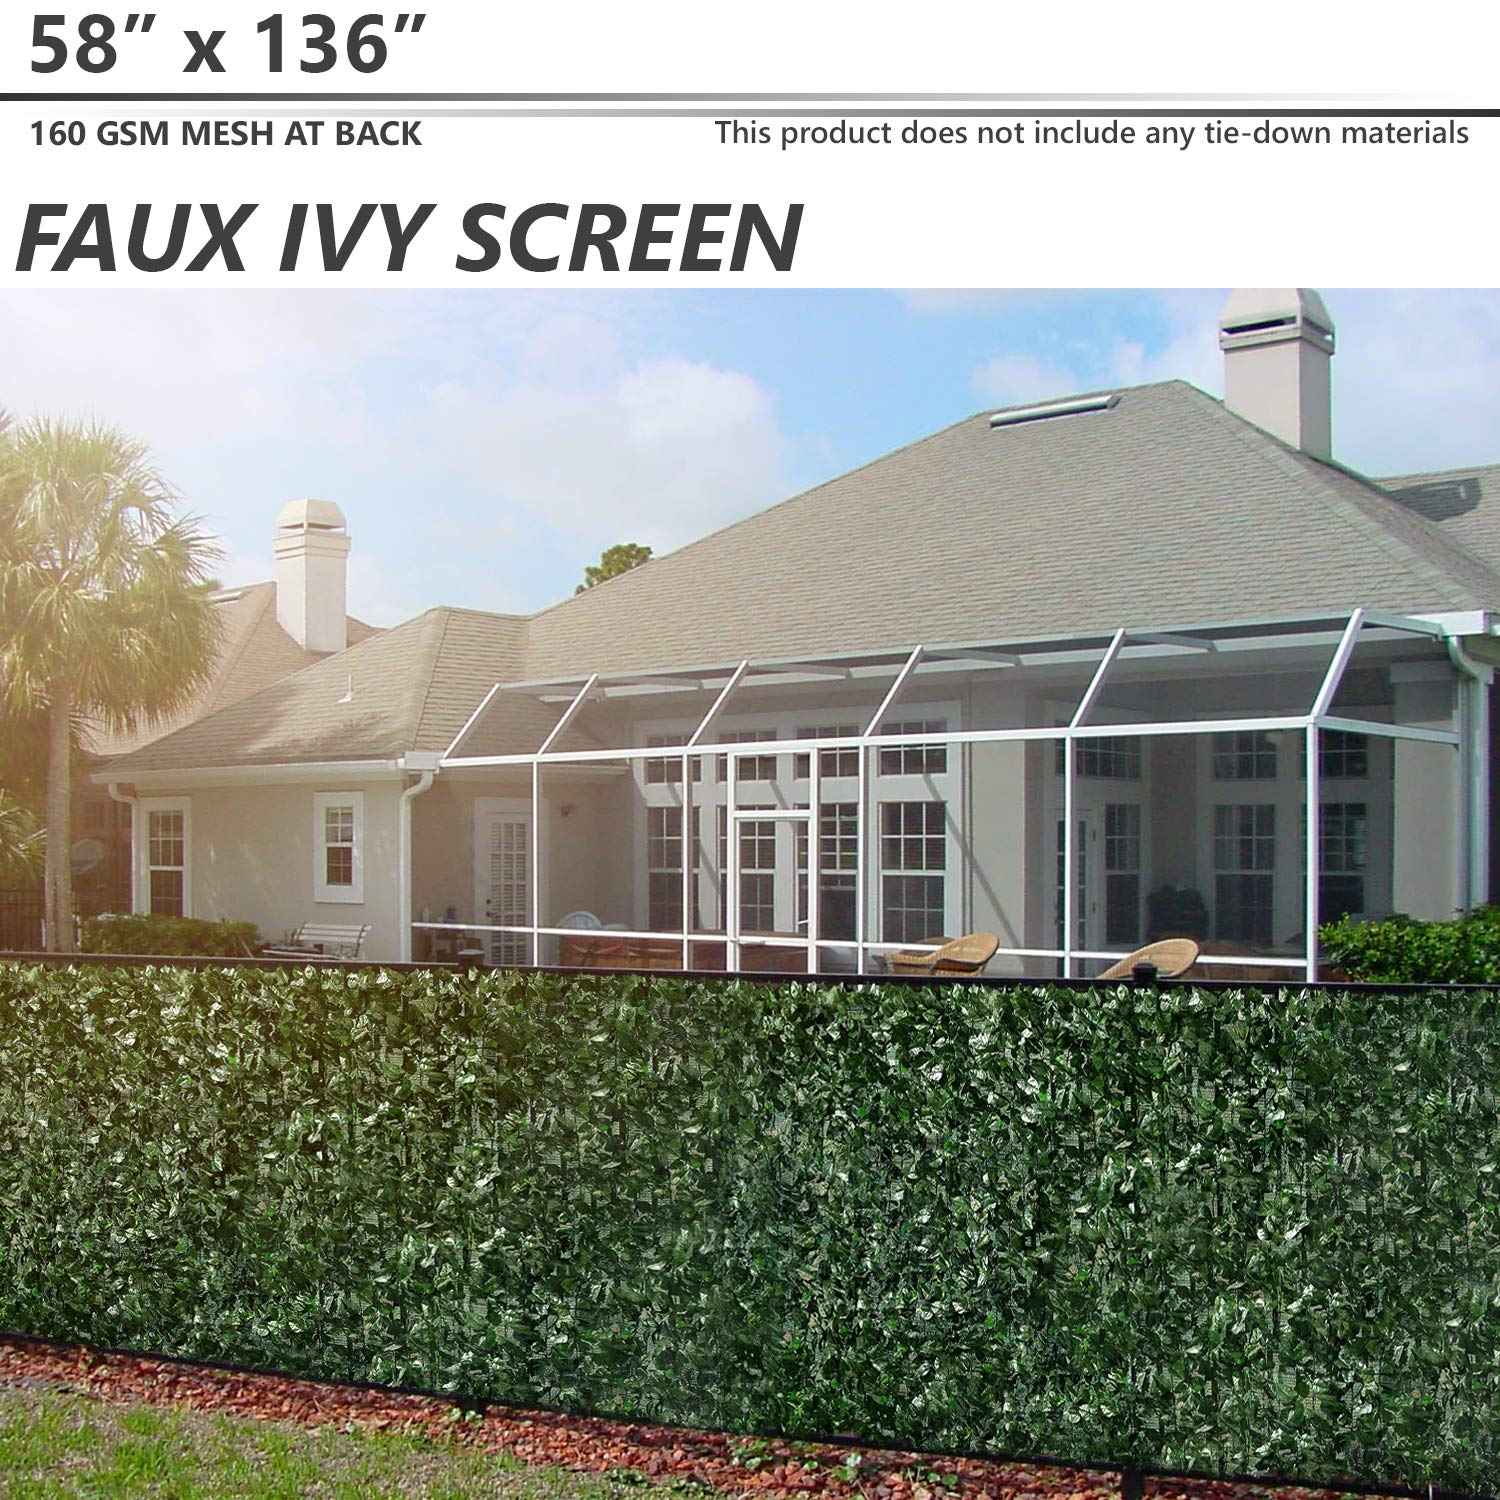 BOUYA 58 x 117 Fence Screen Faux Ivy Privacy with Mesh Back-Artificial Leaf Vine Hedge Perfect for Outdoor D/écor Garden Backyard Decoration Panels Fence Cover